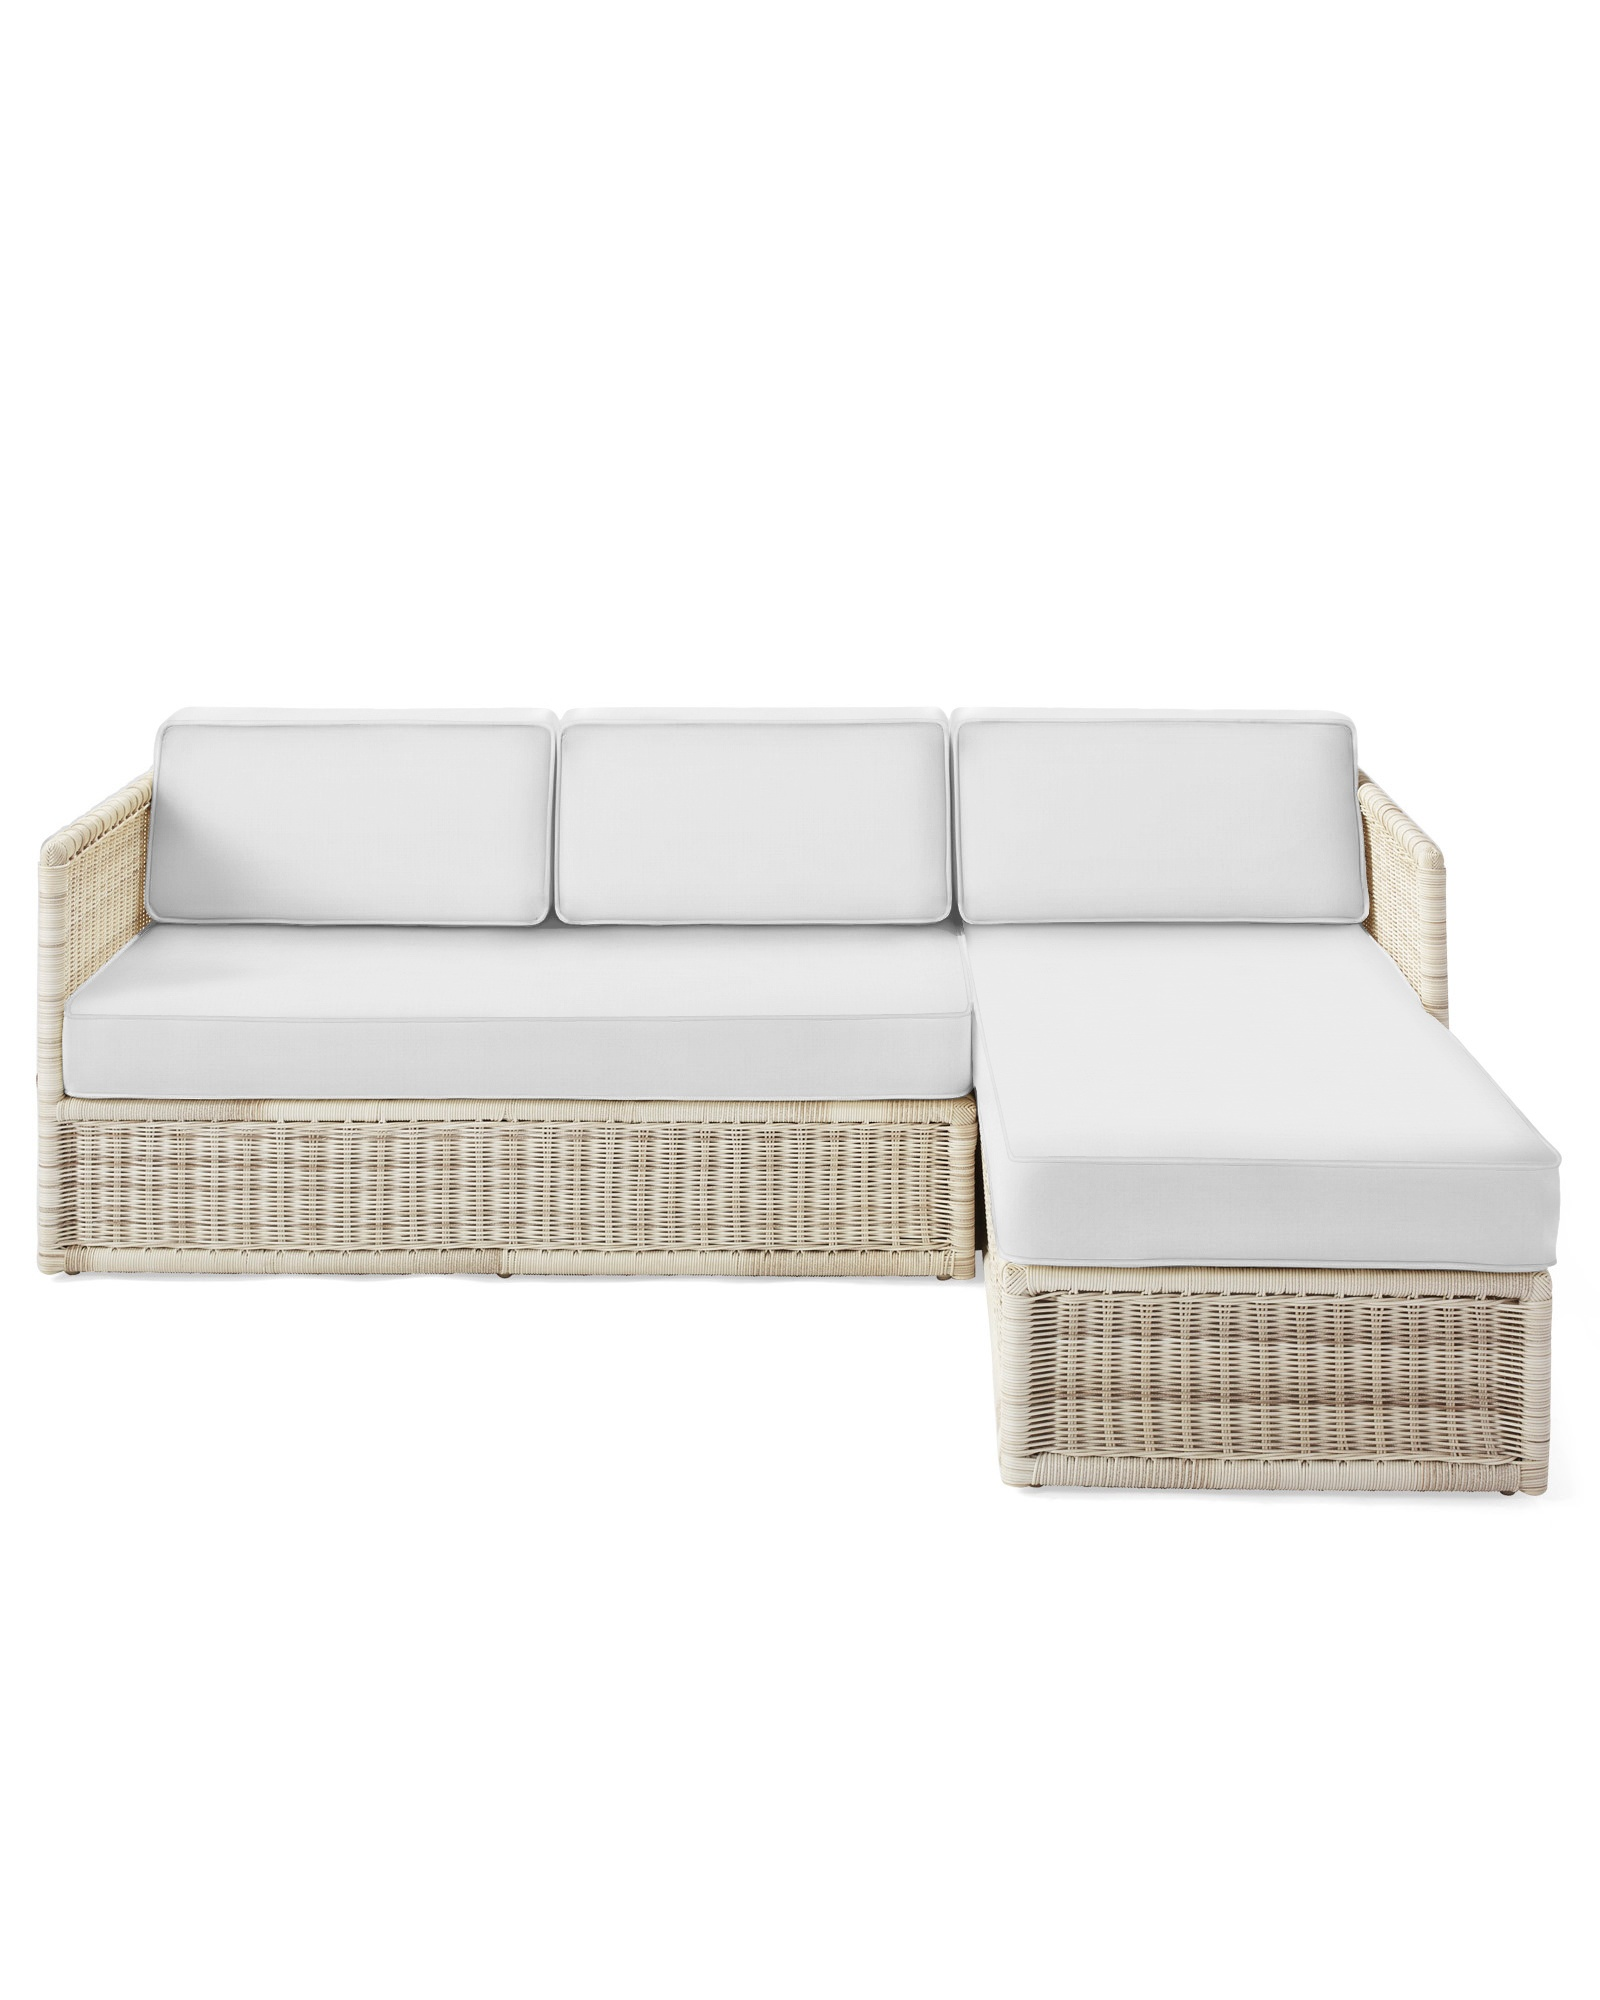 Cushion Cover for Pacifica Chaise Sectional, Perennials Basketweave White